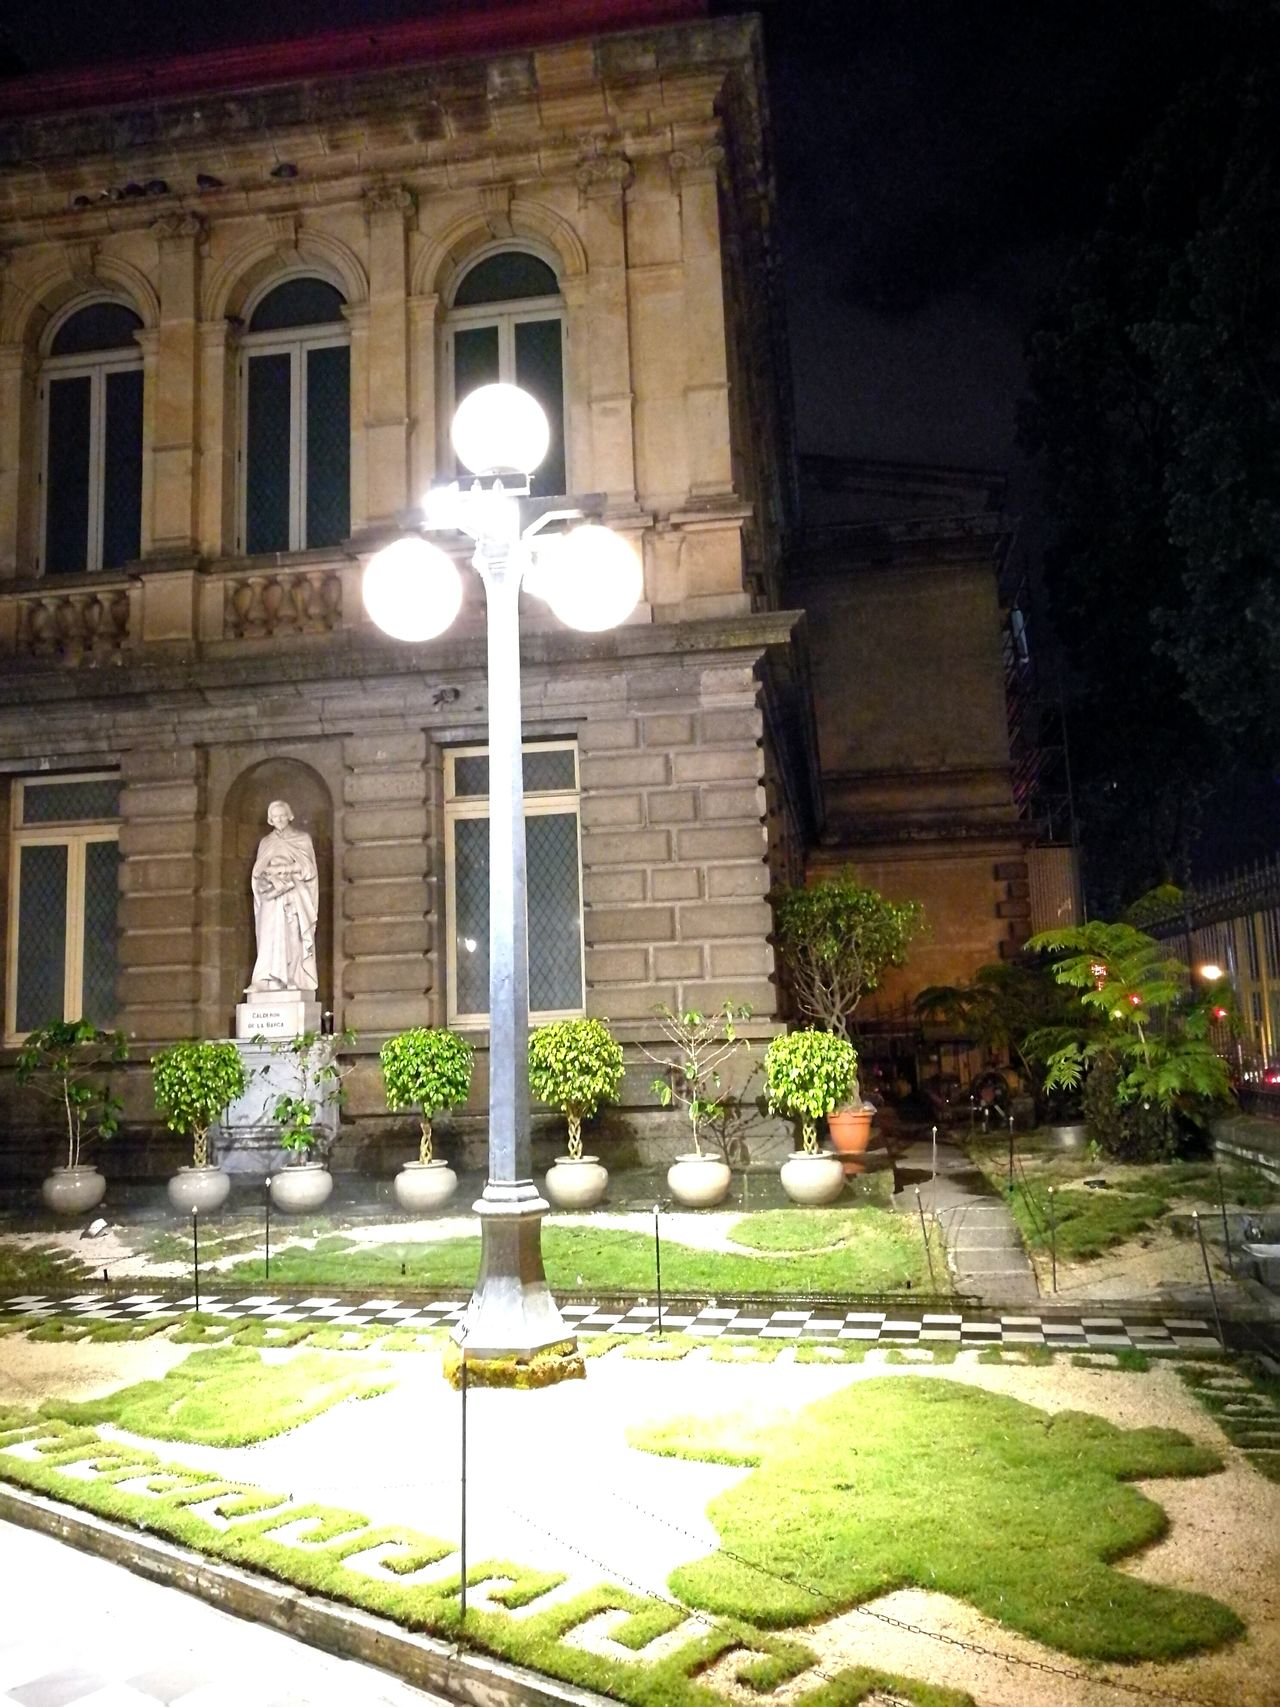 No People Outdoors Architecture Illuminated Night Night View Night Lights Outdoors Photograpghy  Concert Hall  Night Life Business Finance And Industry Teatro Nacional National Theater Tourism Travel Destinations Night Photography Theatre Of Opera And Ballet Facades And Light Building Exterior Garden